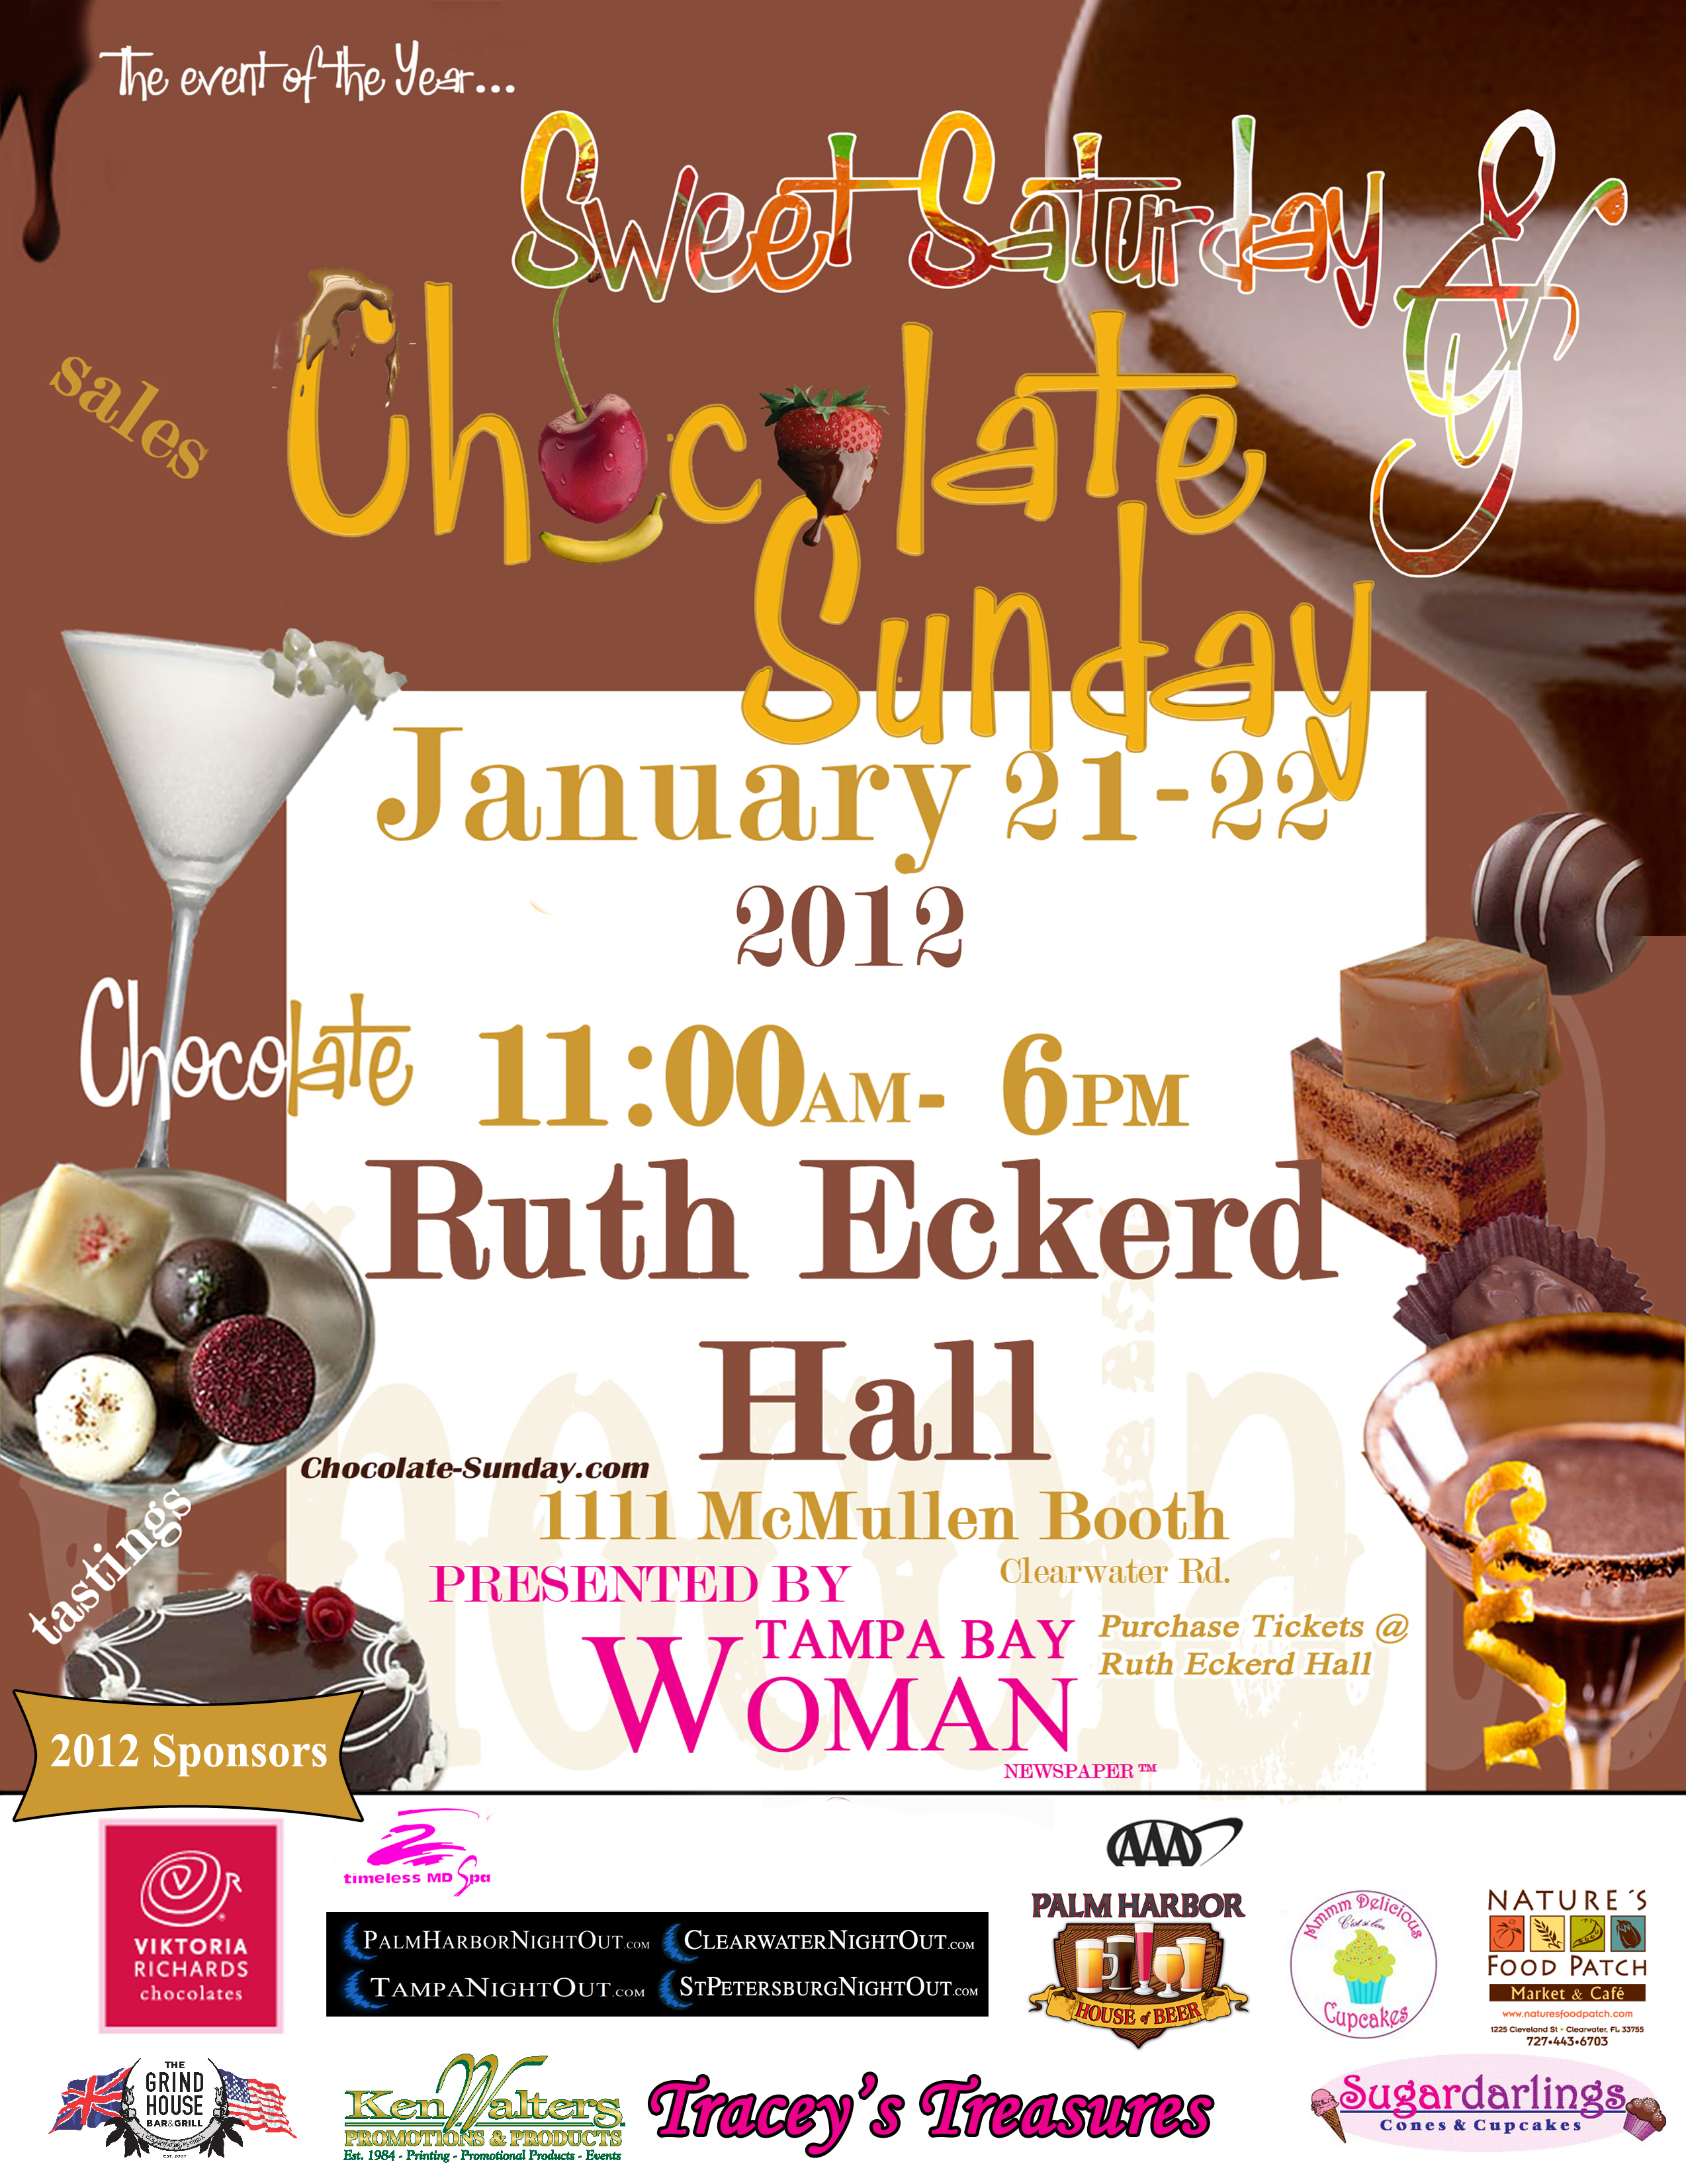 Sweet Saturday and Chocolate Sunday this weekend @ Ruth Eckerd Hall